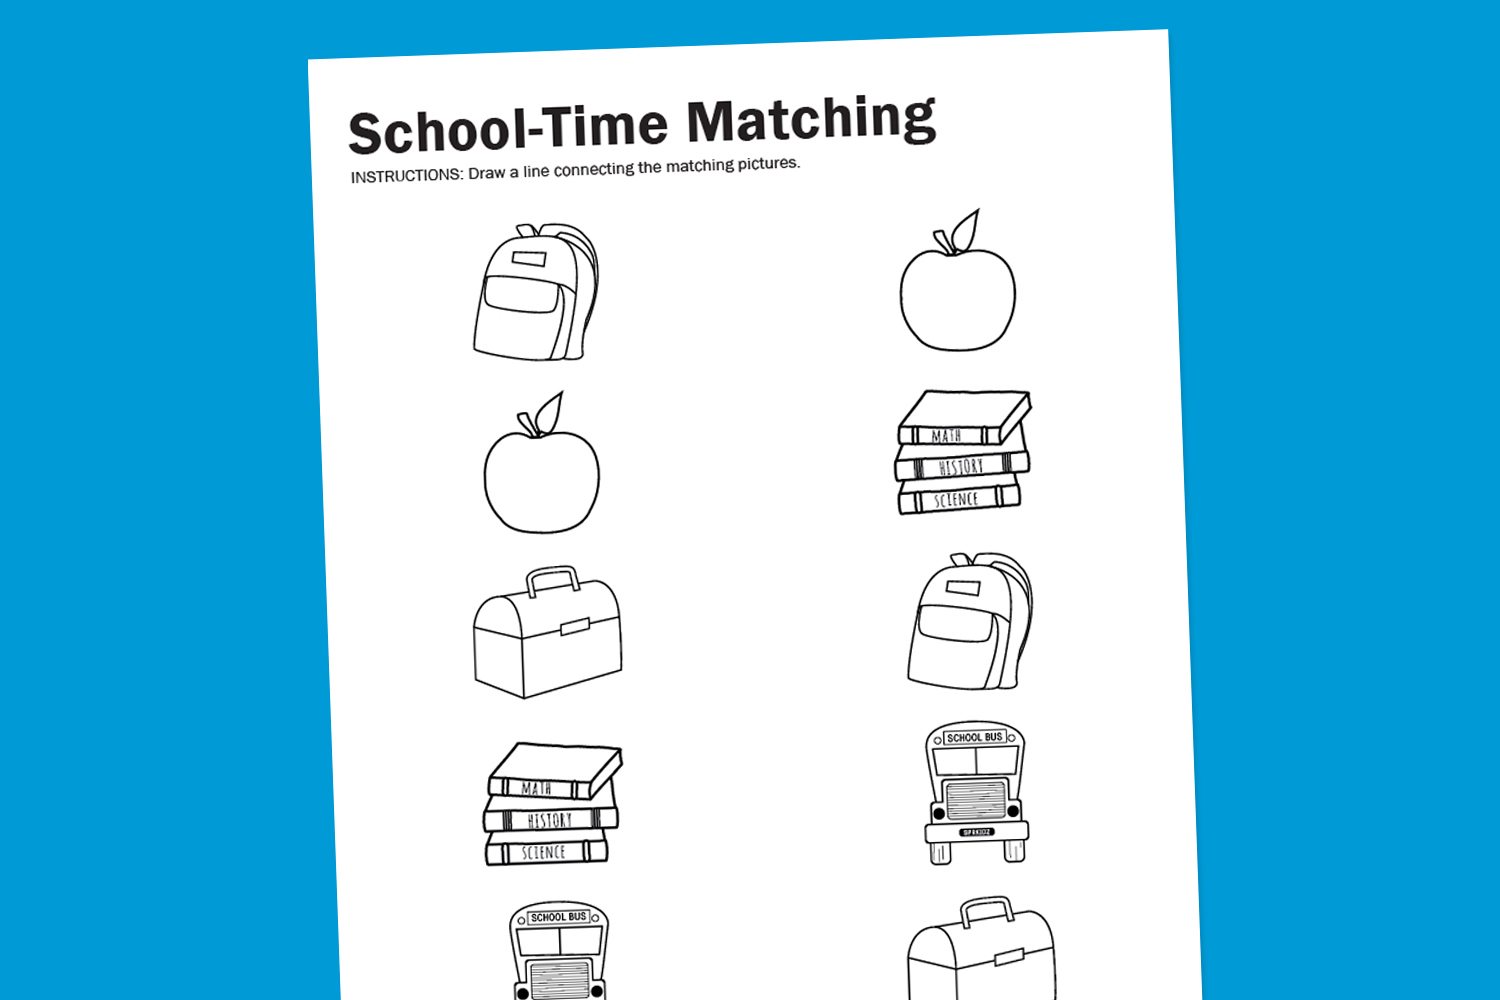 School Printable Images Gallery Category Page 2